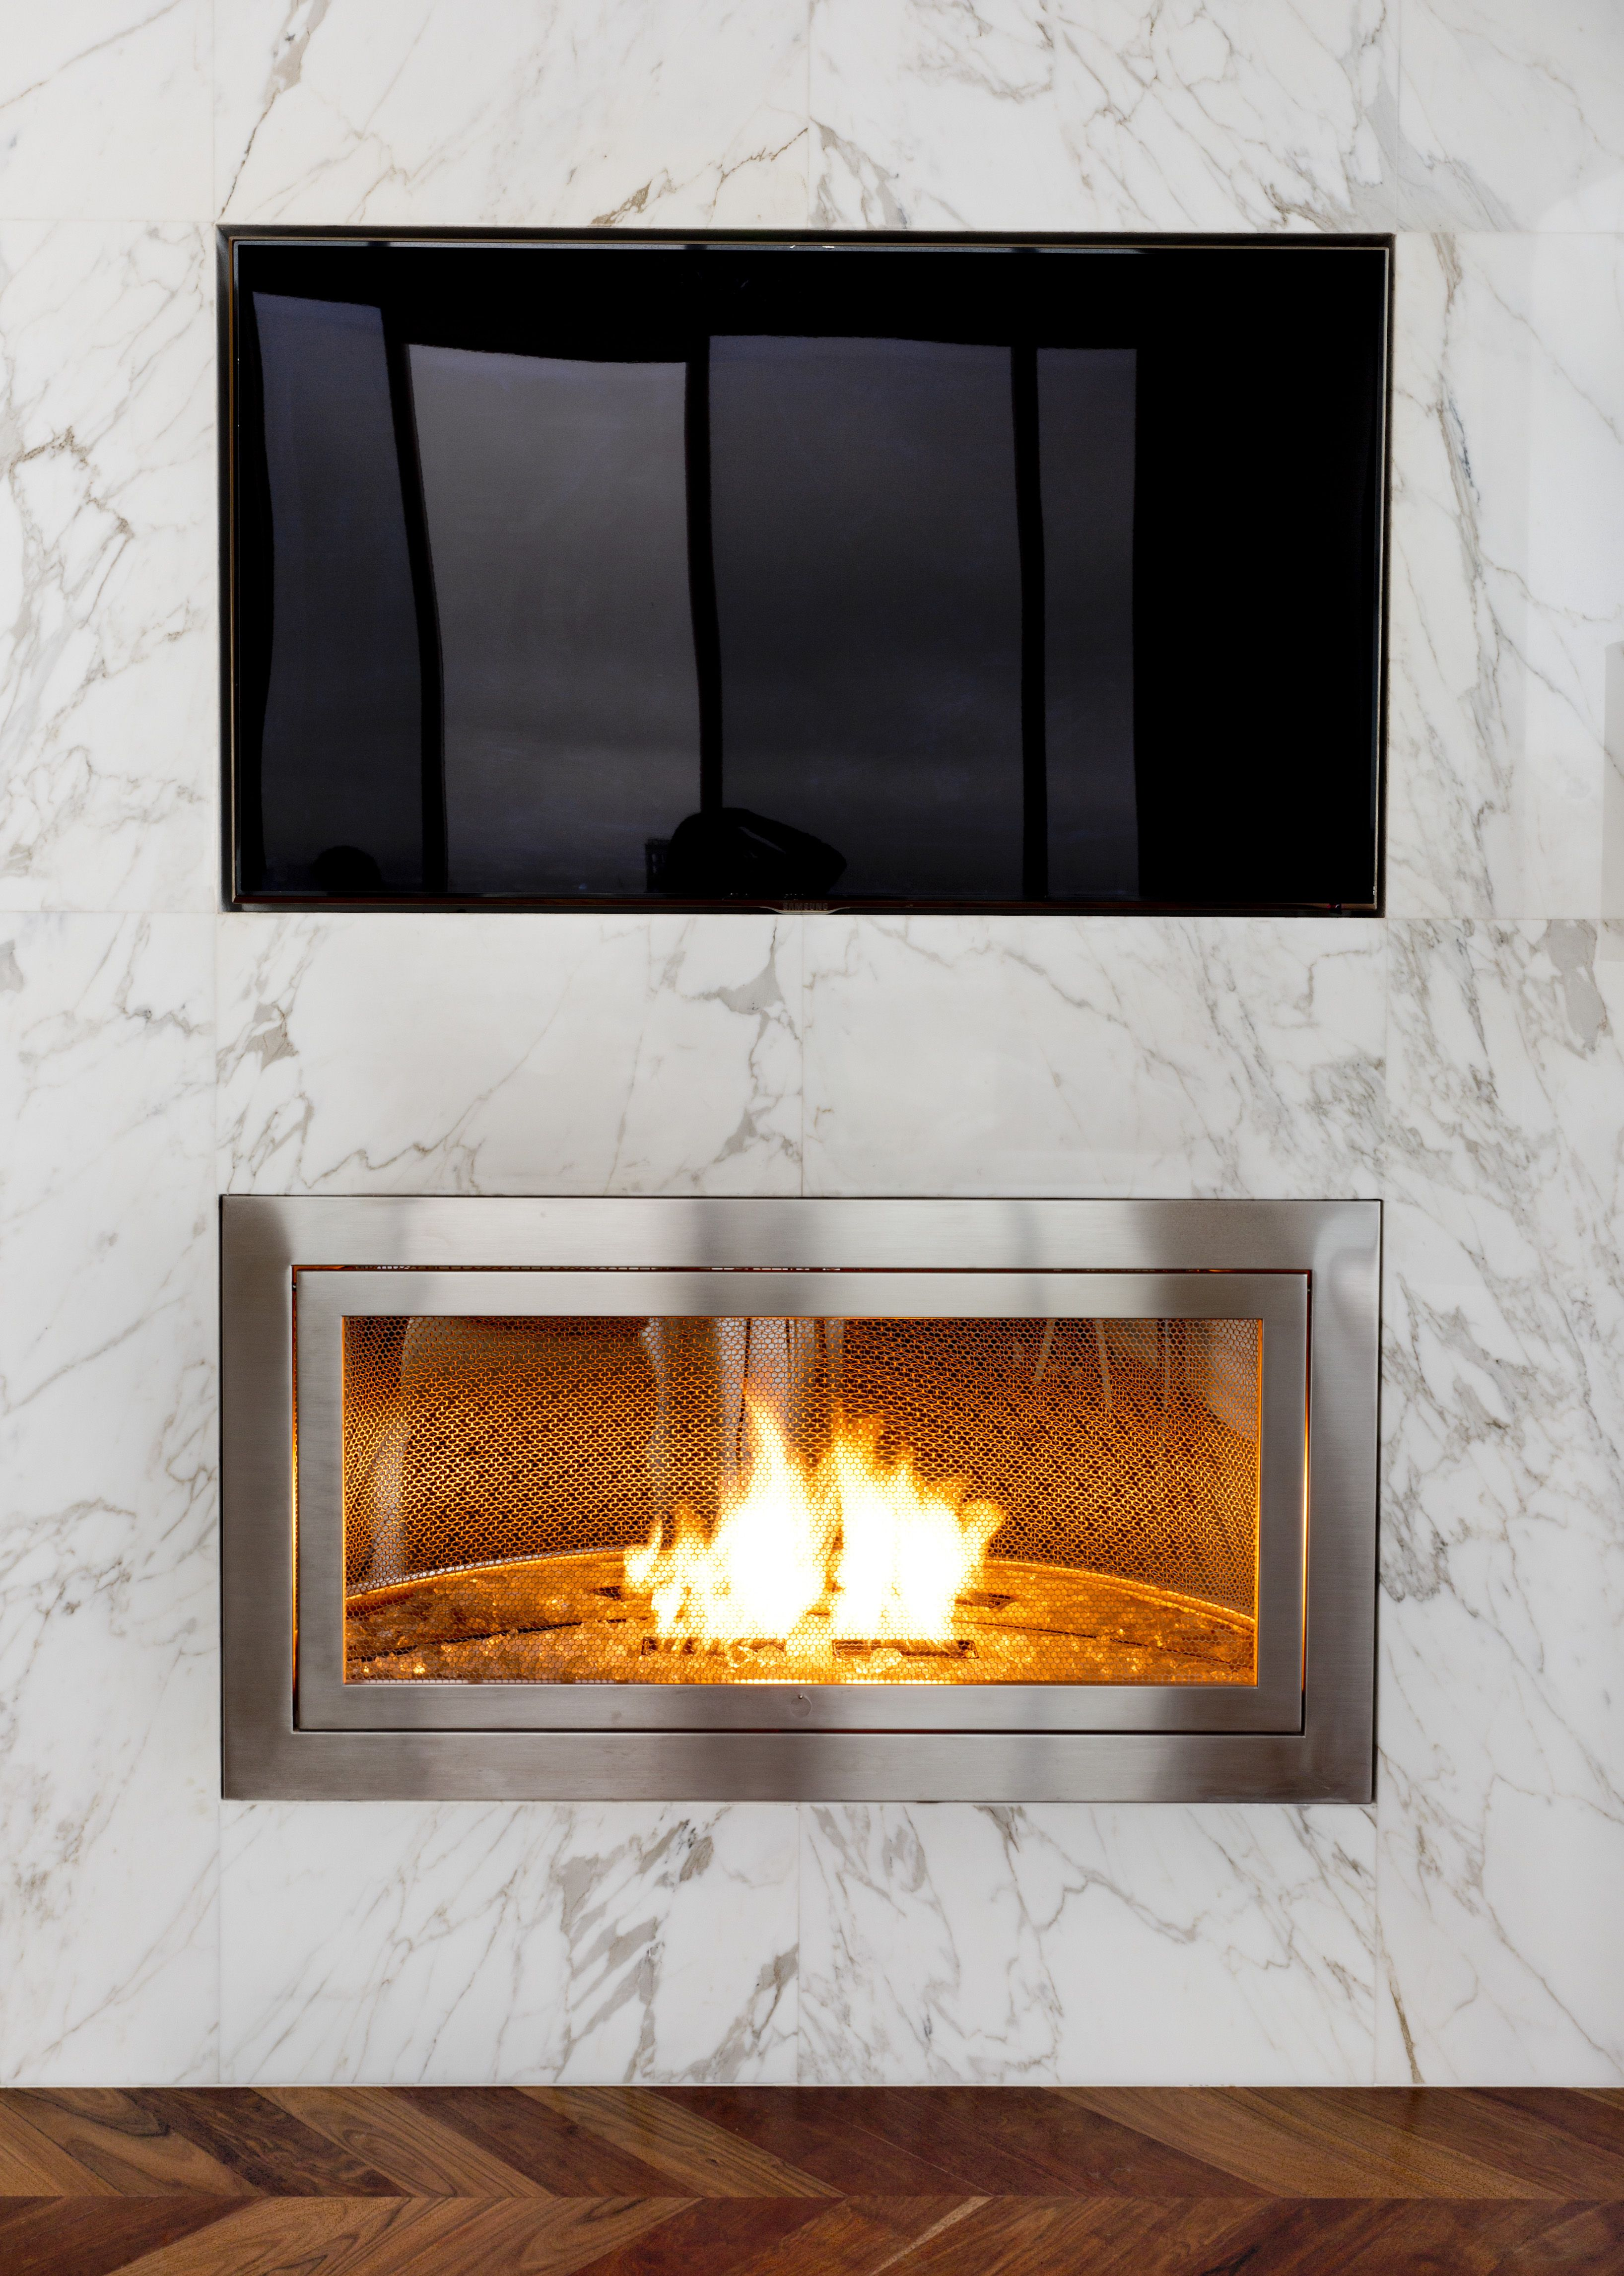 From The Marble Surround To The Stainless Steel Fireplace This